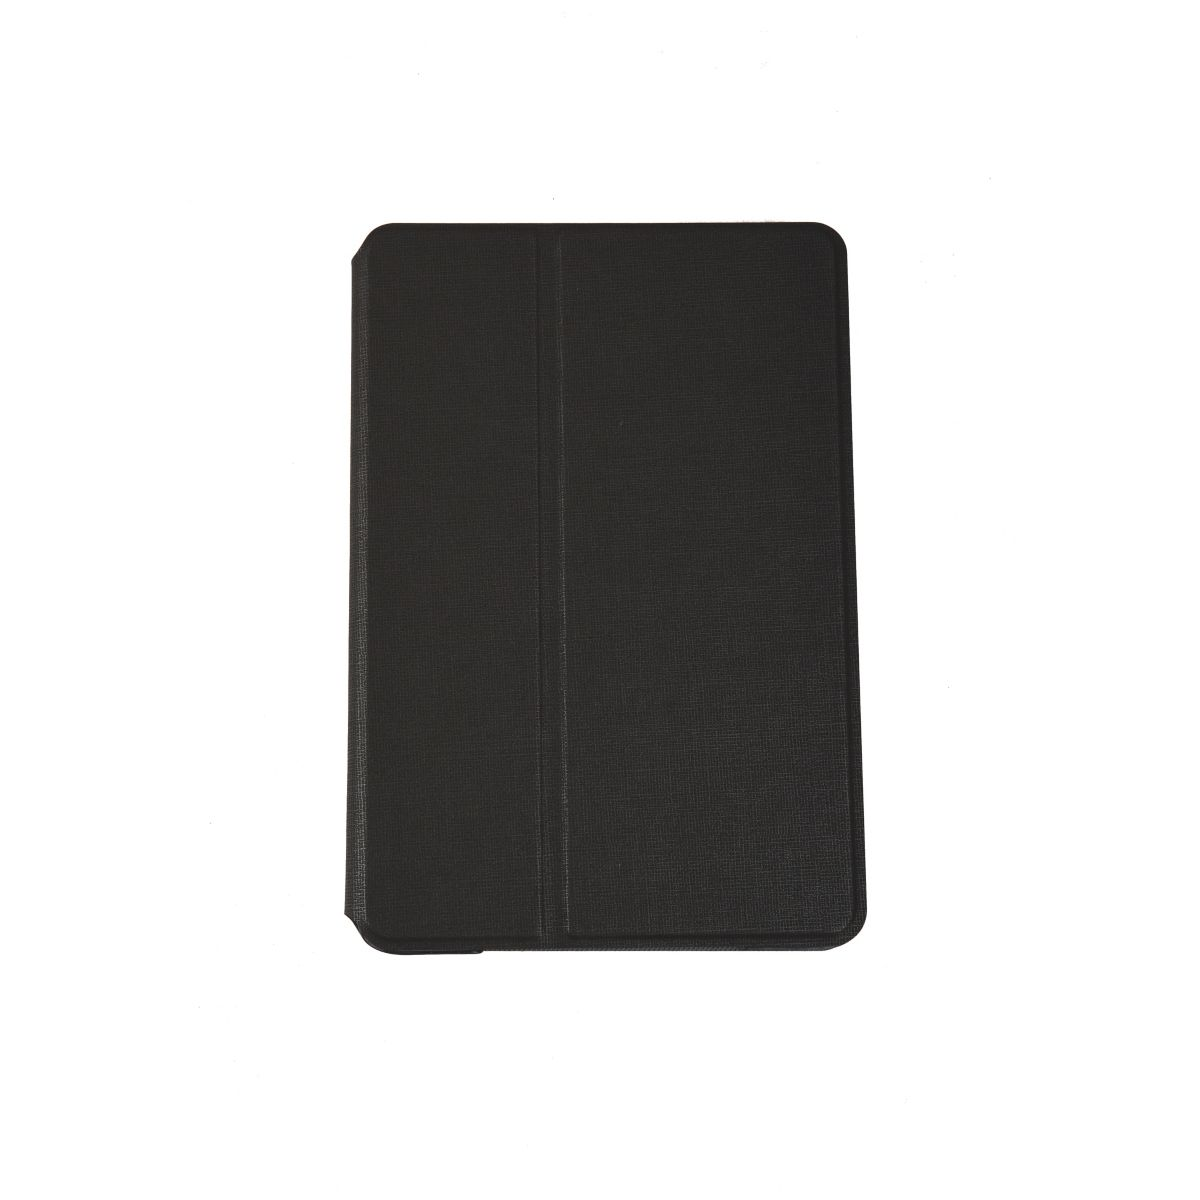 Etui ESSENTIELB iPad Mini 2/3 rotatif Noir (photo)